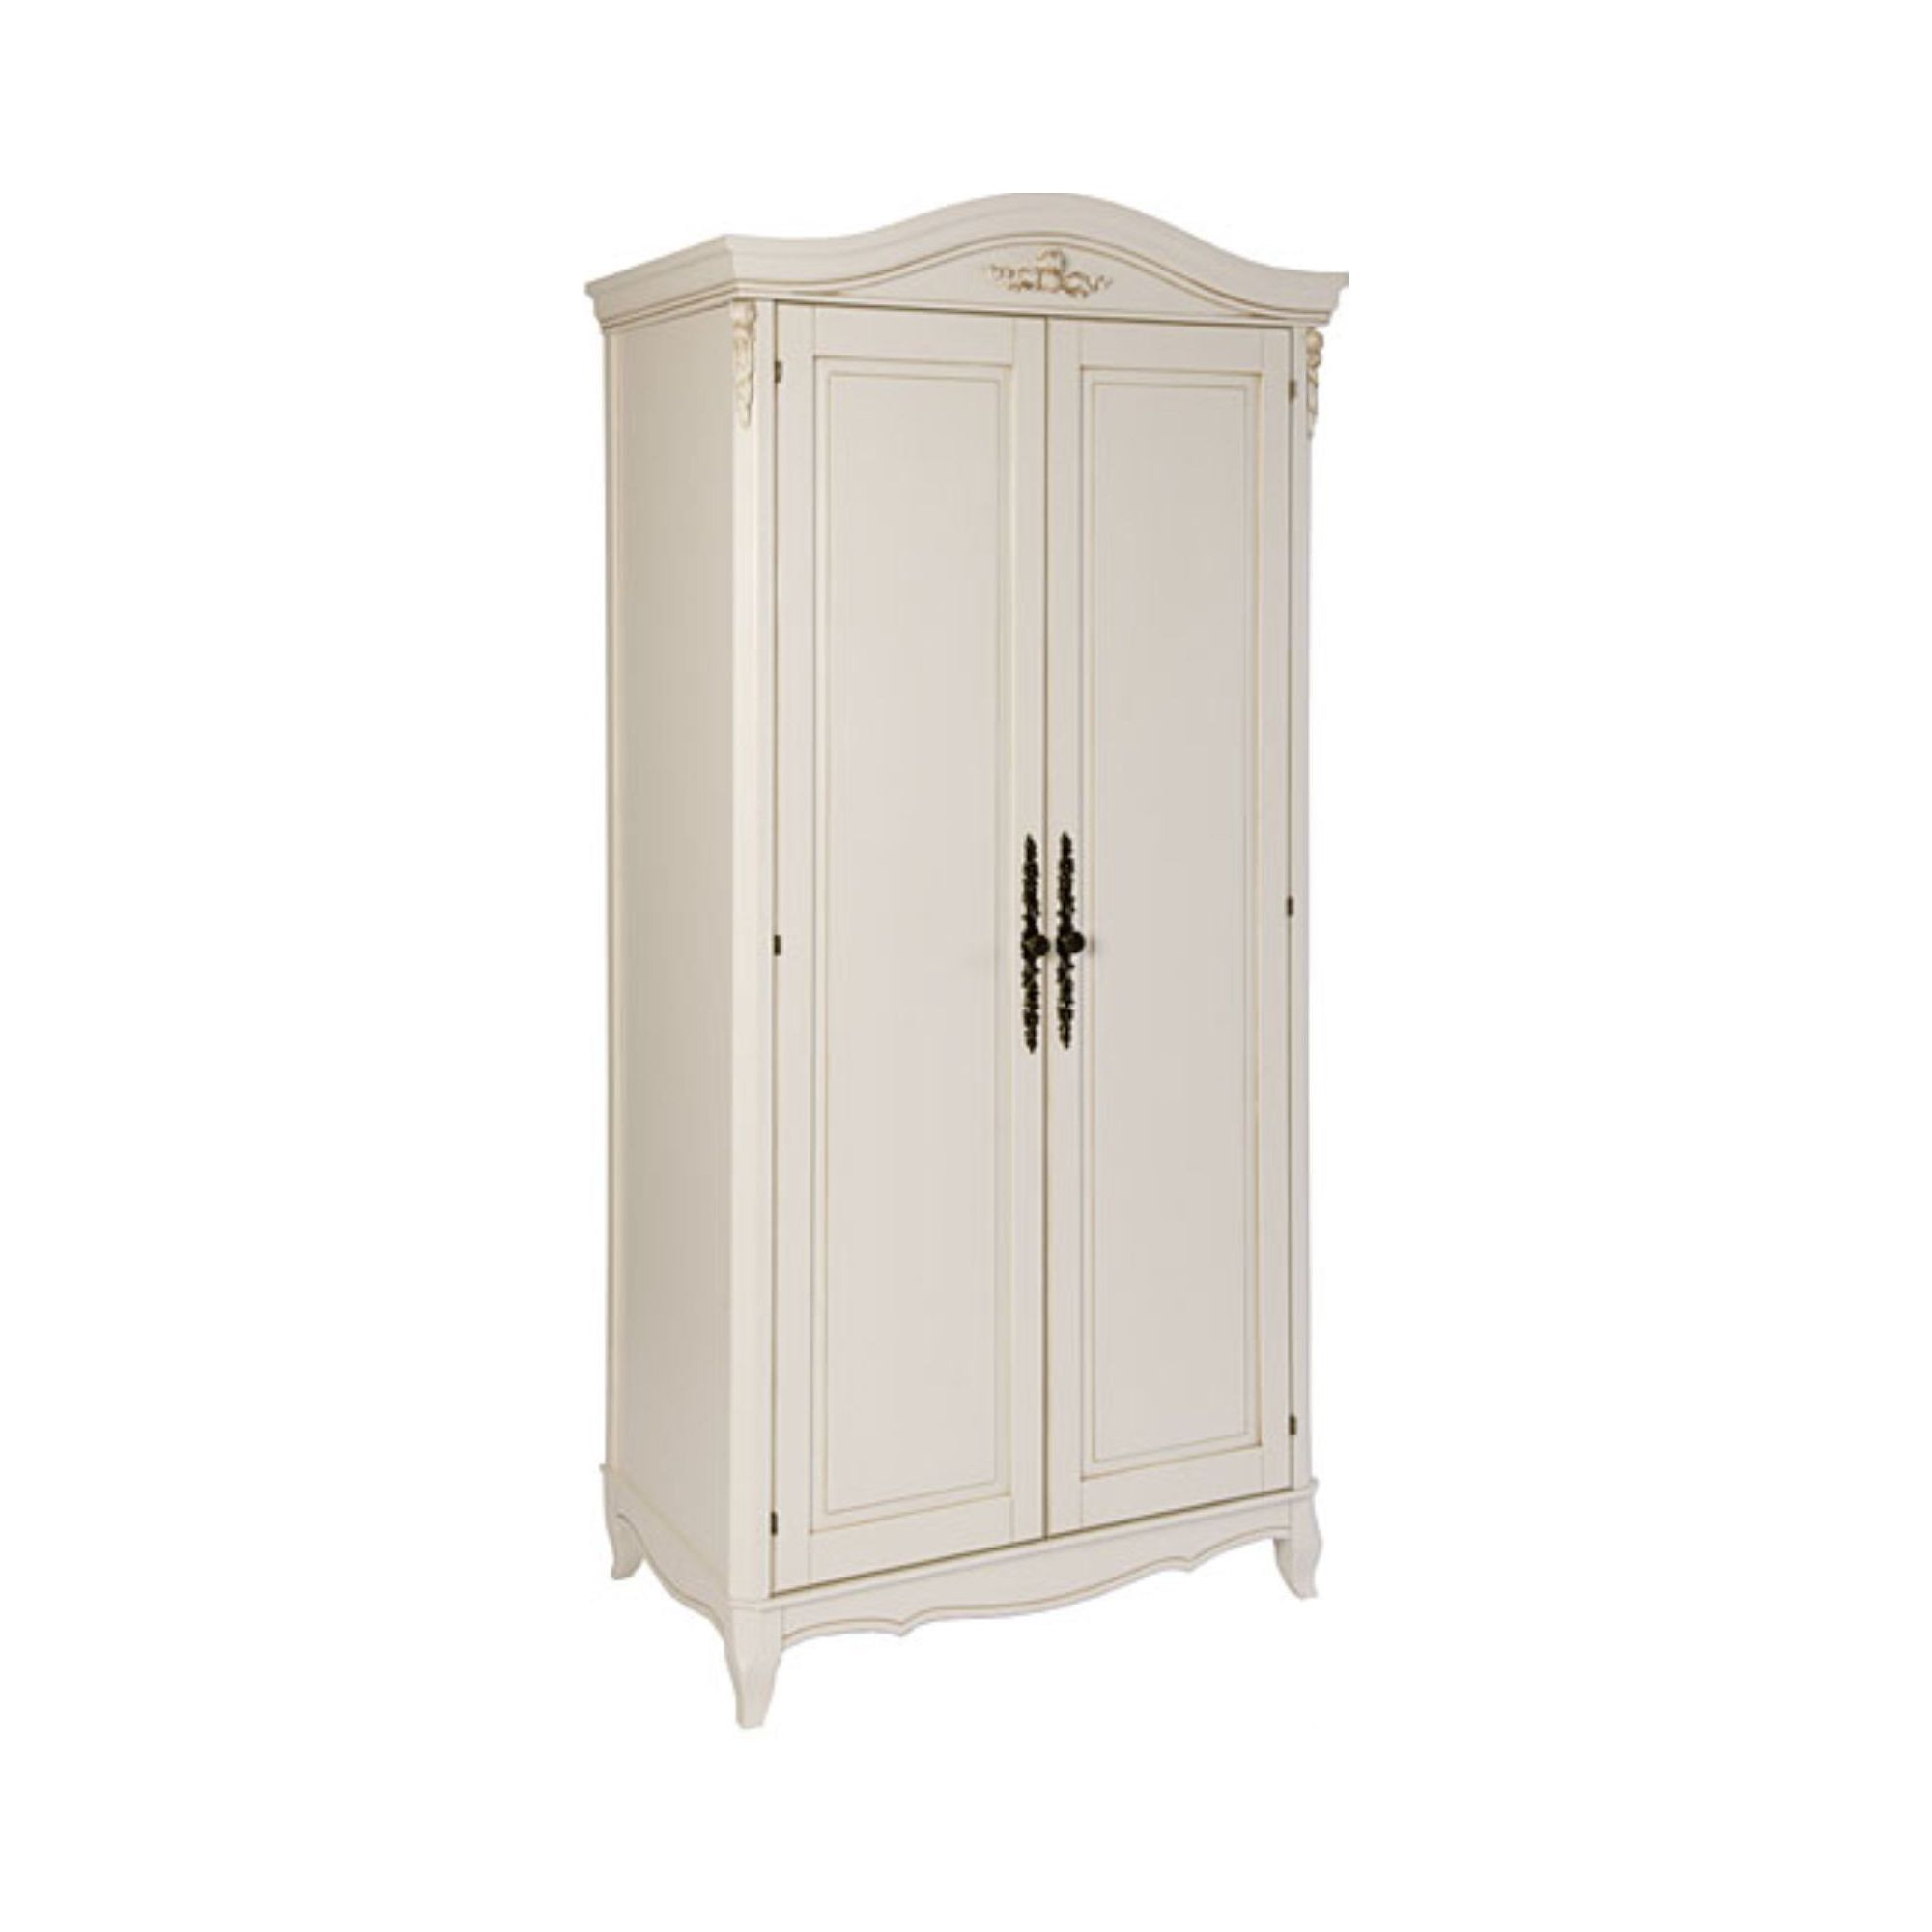 Kelburn Furniture Laurent 2 Door Wardrobe at Tesco Direct